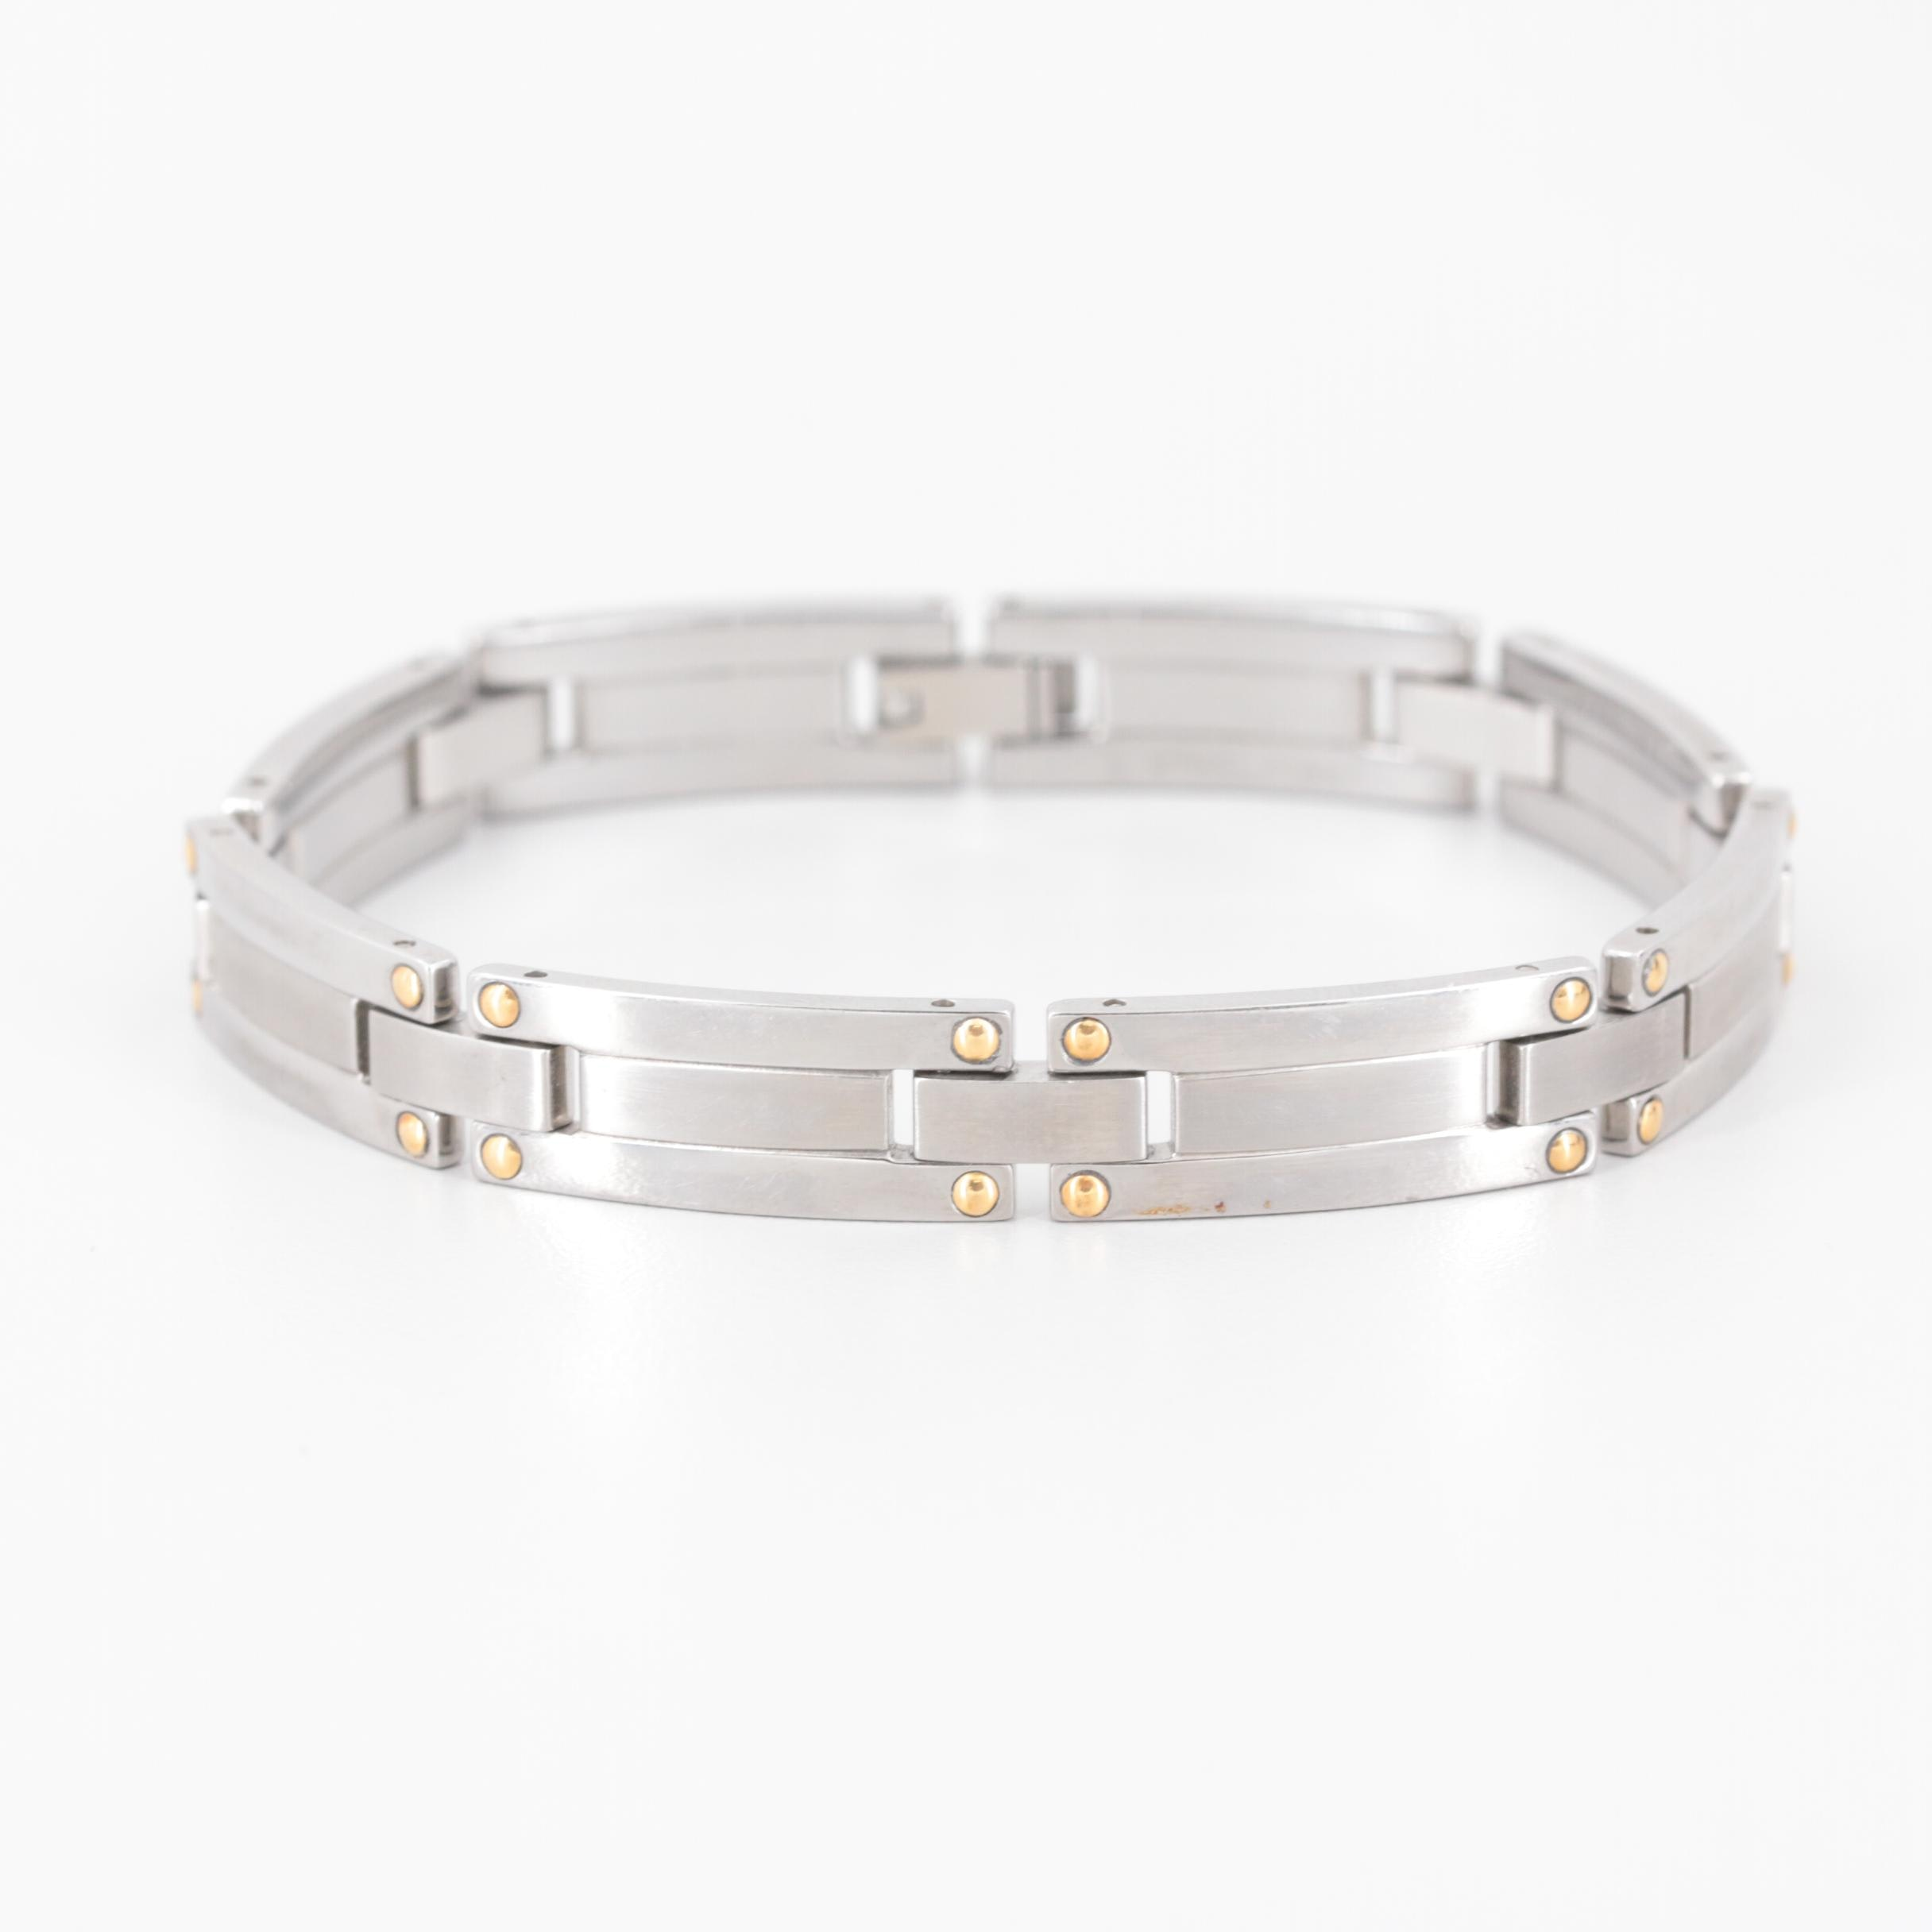 Stainless Steel and 18K Yellow Gold Bracelet